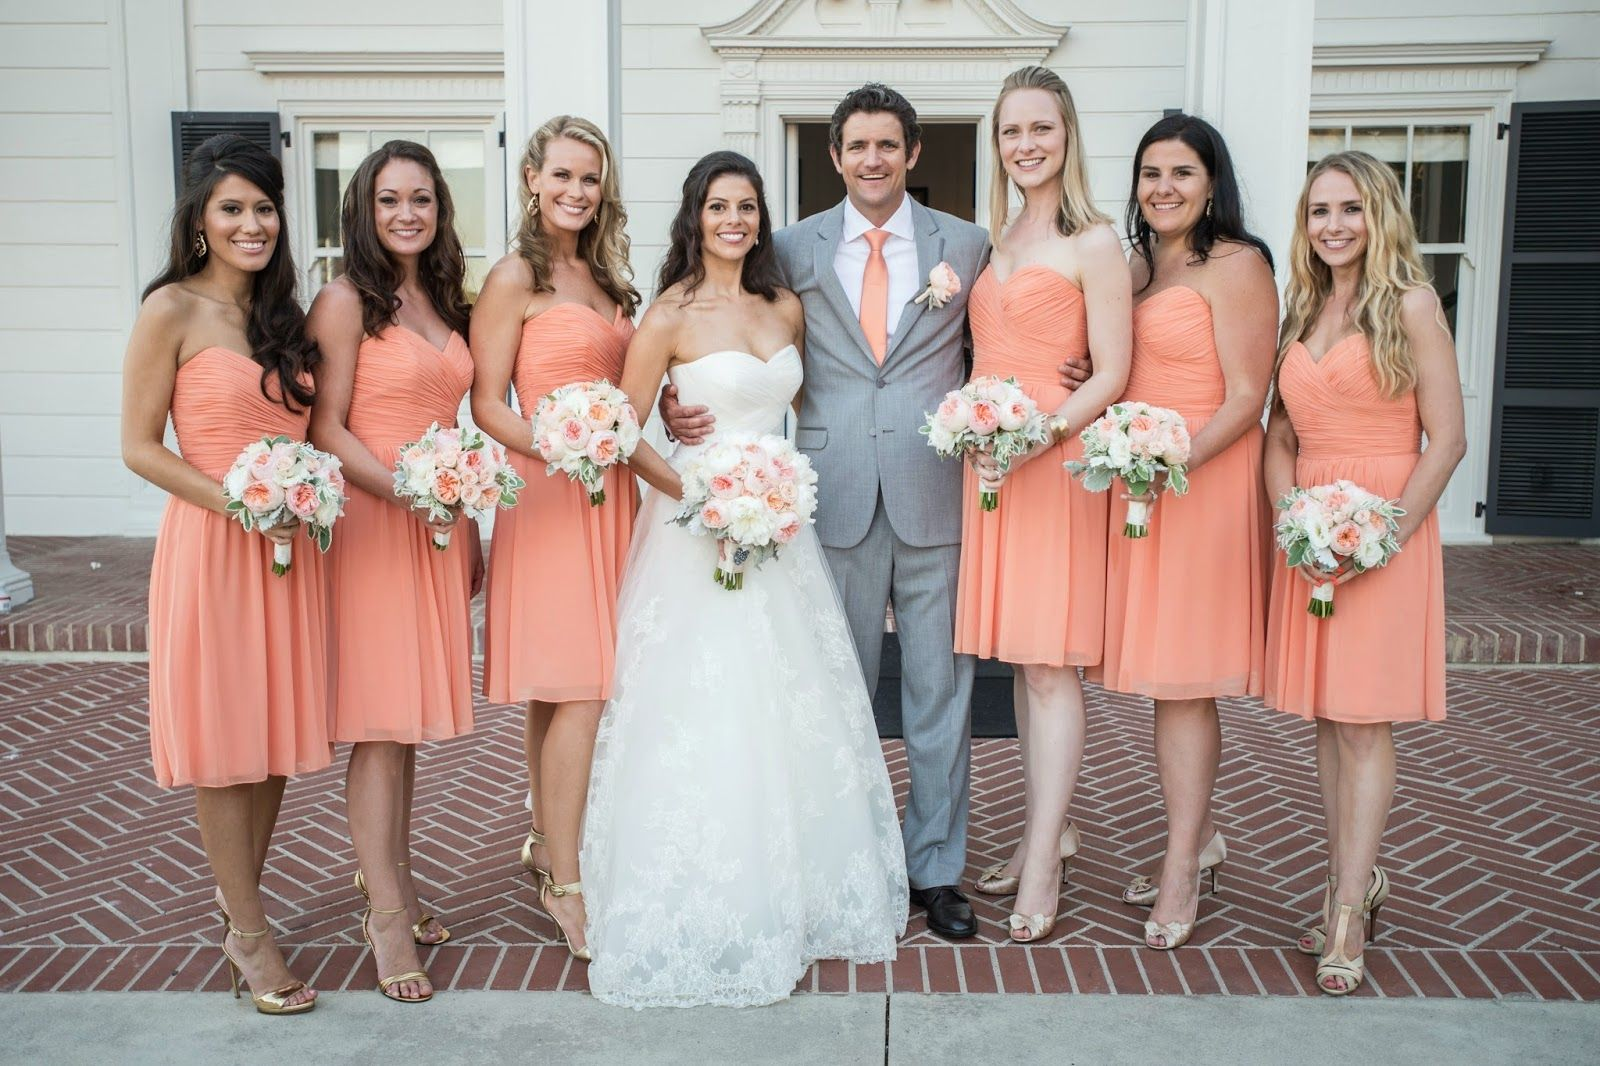 Small Of Peach Colored Dresses Wedding